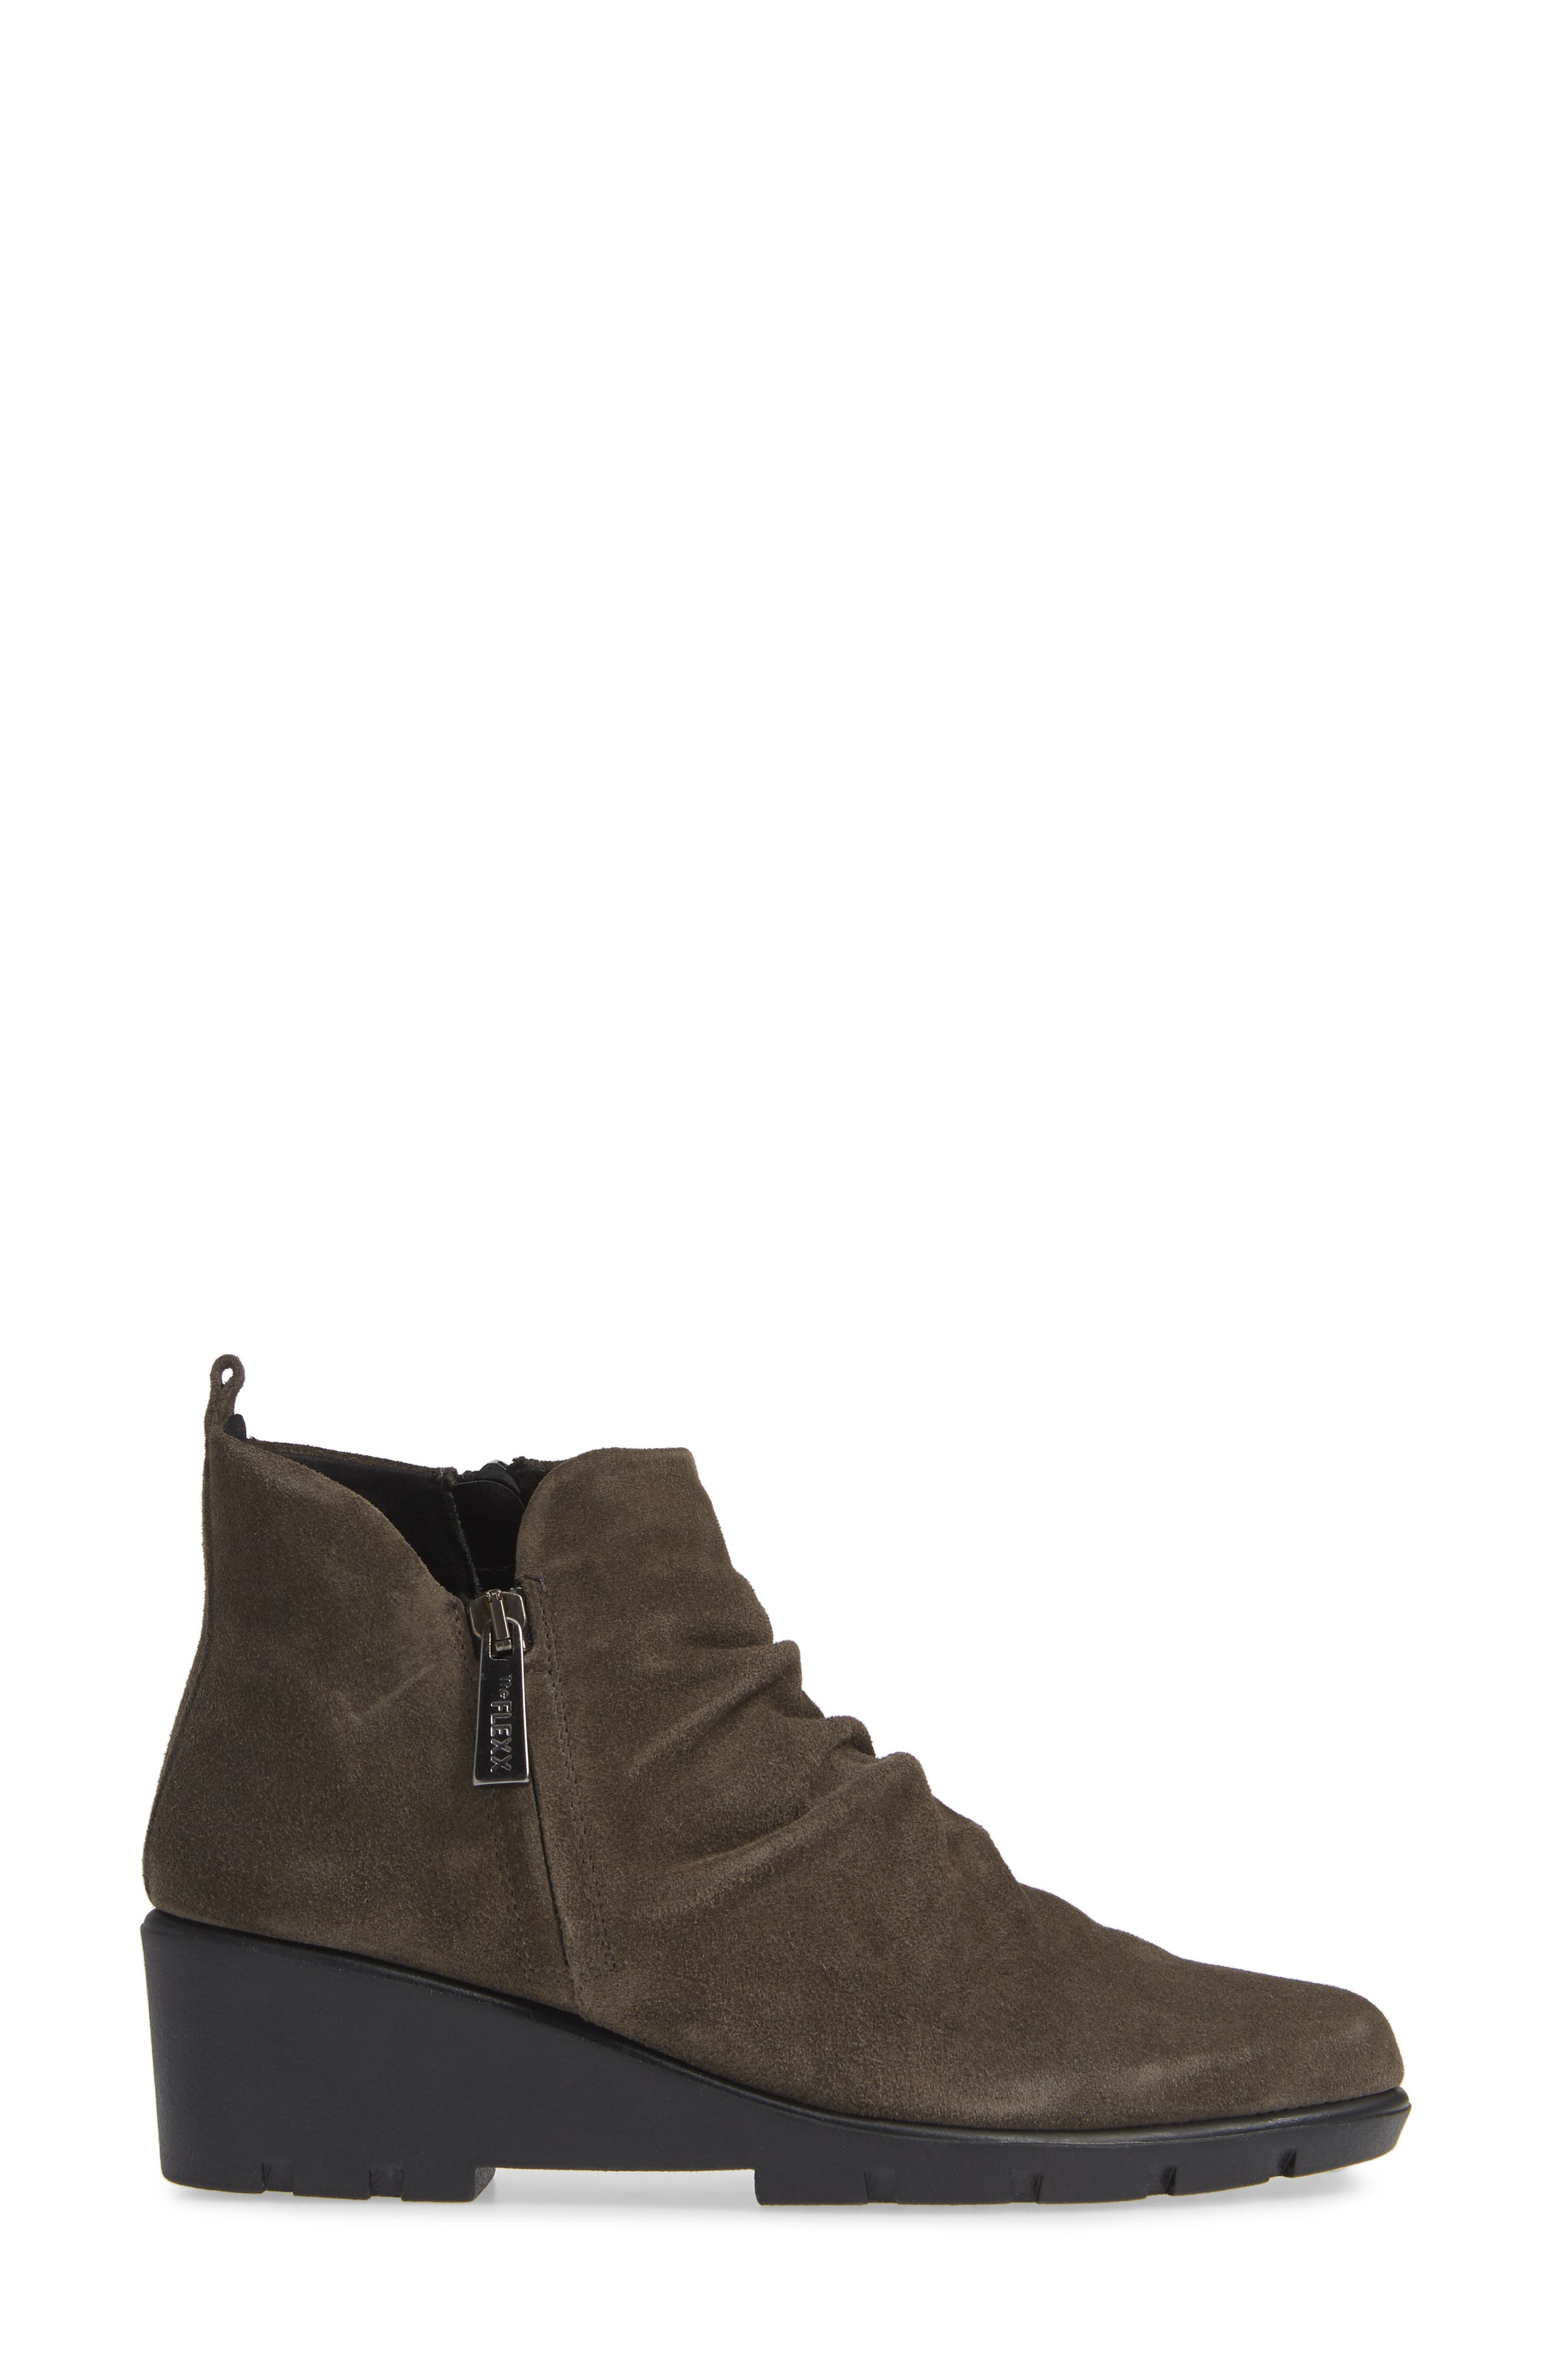 THE FLEXX, Slingshot Ankle Bootie, Alternate thumbnail 3, color, BROWN SUEDE